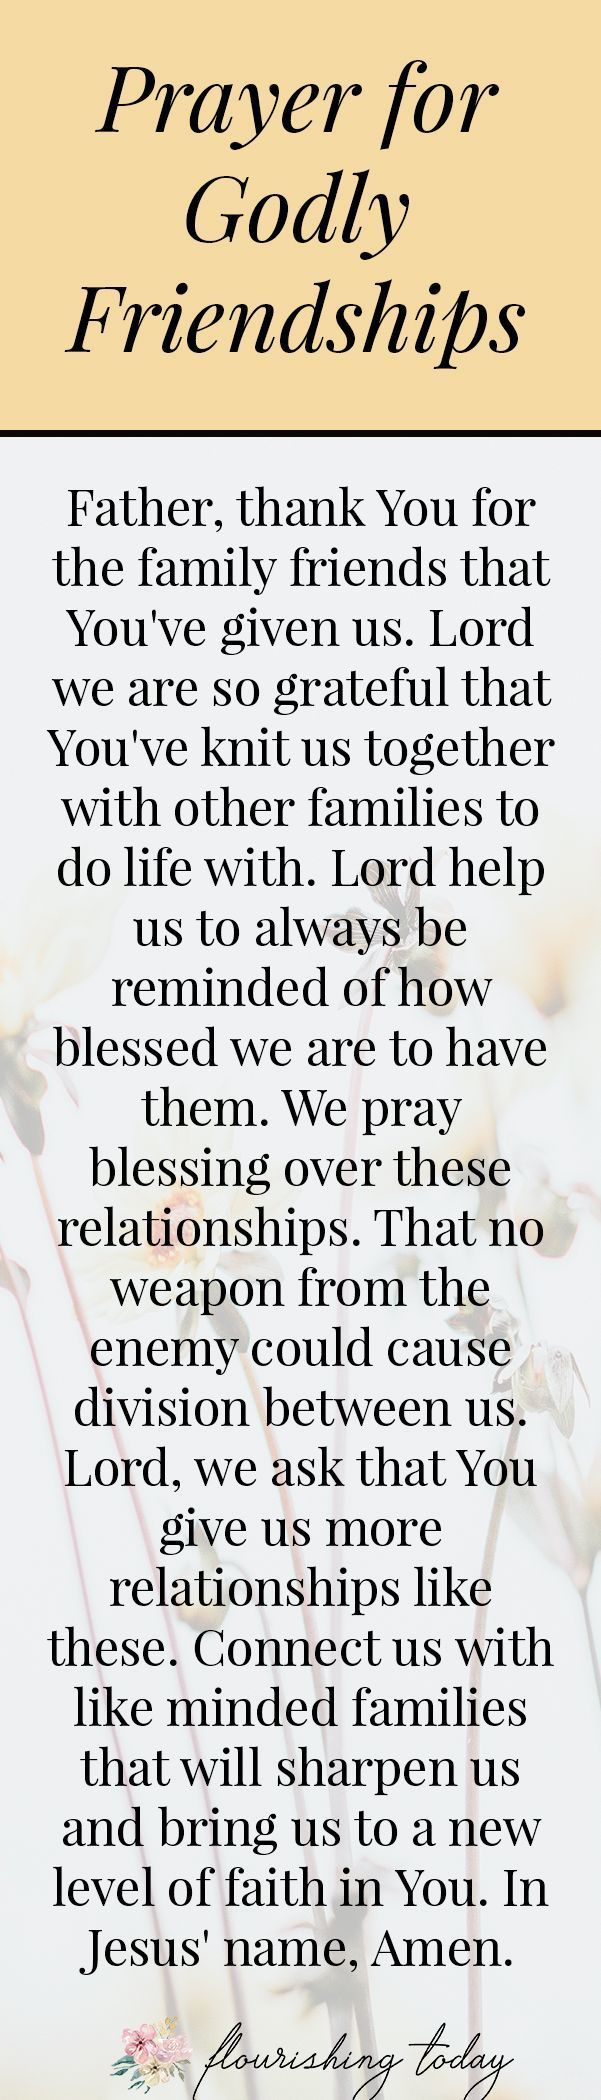 Do you pray specifically and strategically for your family every day? Many times we only pray for protection over our family or when they are going through hard times. However, there is power when we get intentional with our prayers every day. Here are 5 prayers based on bible verses for topics such as unity, friendships and having a heart for God. #prayer #prayers #family #intentionality #freeprintable